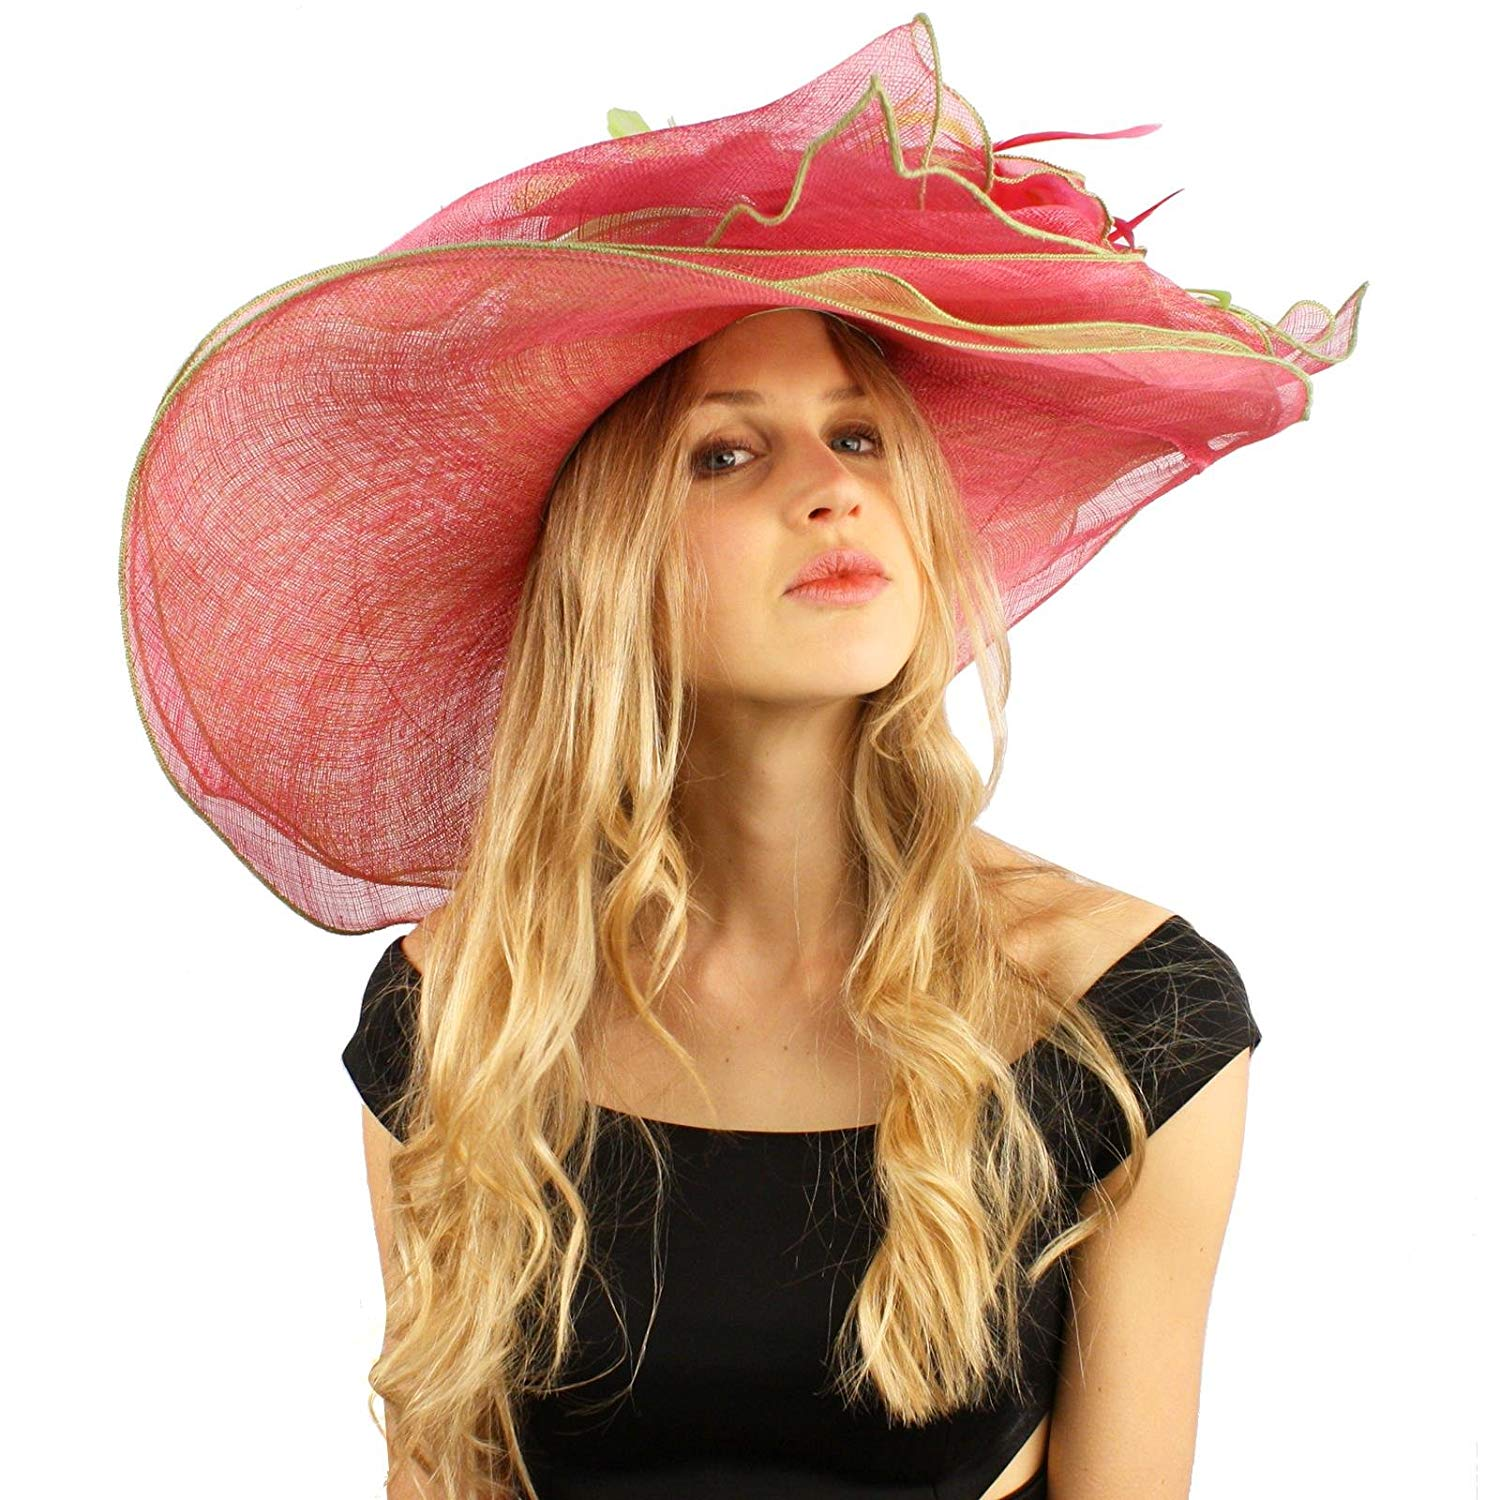 d1829d68c18b Get Quotations · SK Hat shop Spectacular Floral Layered Sinamay Derby  Floppy Wide Brim Dressy Hat